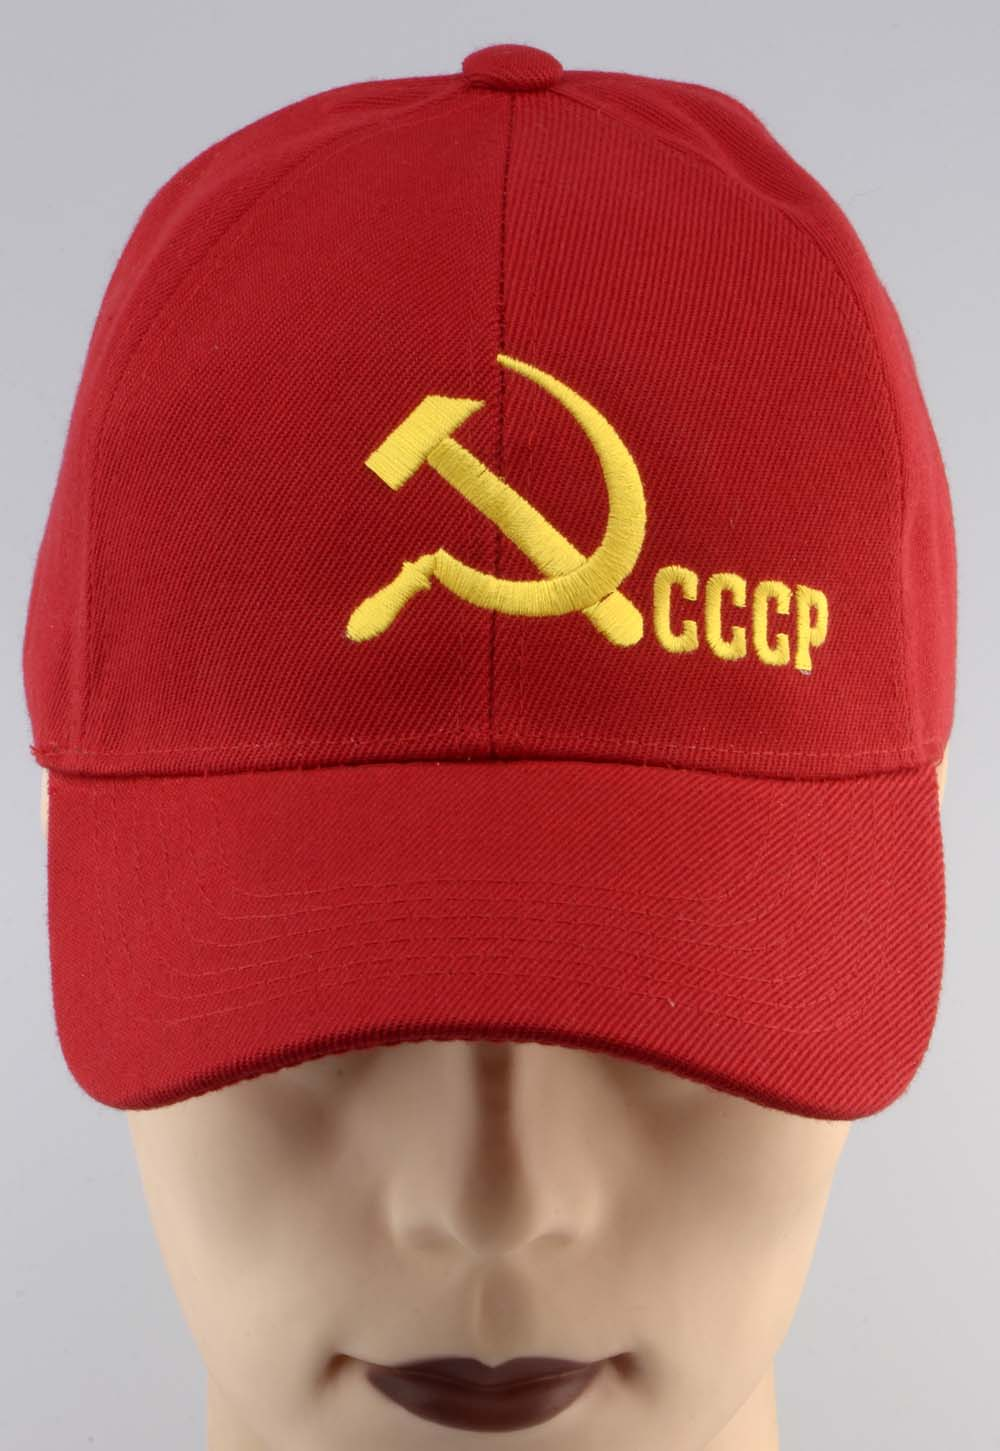 Soviet Union Communist Ussr Cccp Hammer And Sickle